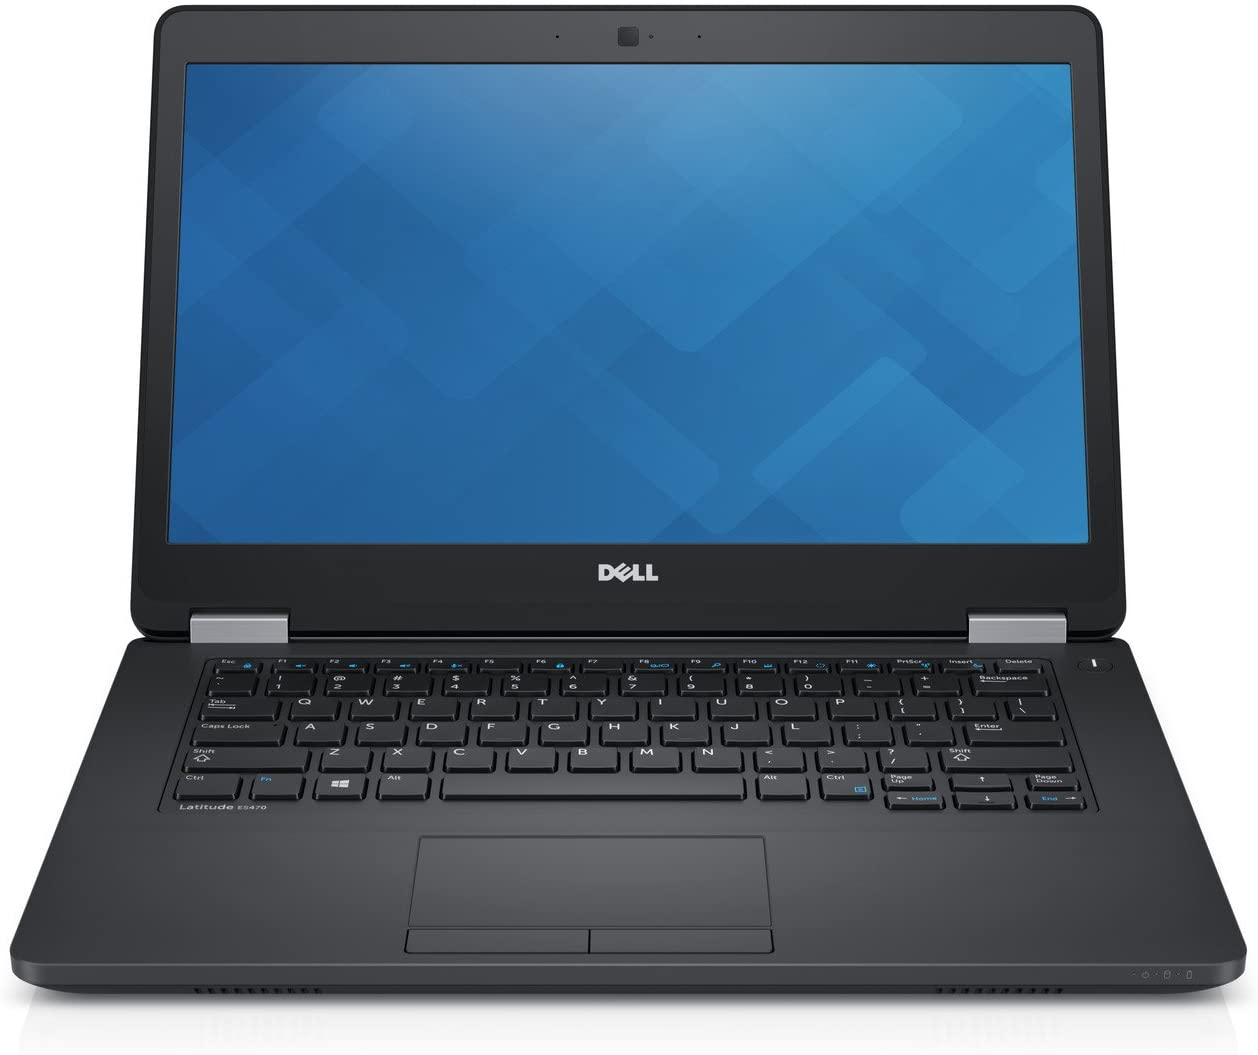 2018 Dell Latitude E5470 Business Laptop | Intel Core 6th Generation i5-6300U | 8 GB DDR4 | 256 GB SSD | 14inch HD+ (1600x900) | Windows 10 Pro | Warranty to 2020